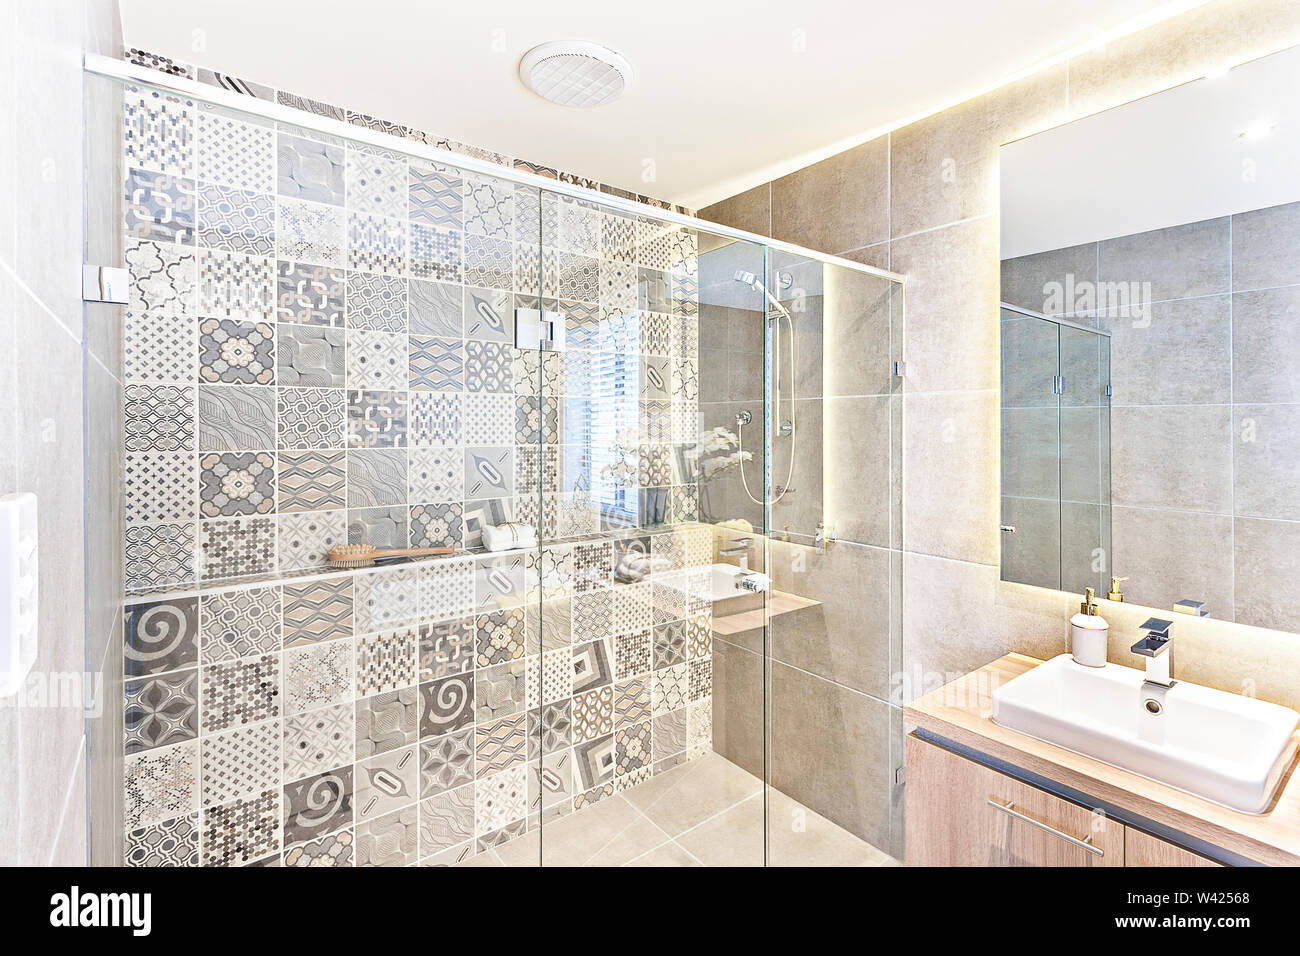 Bathroom Pattern Wall Design With Art Printed On The Wall In